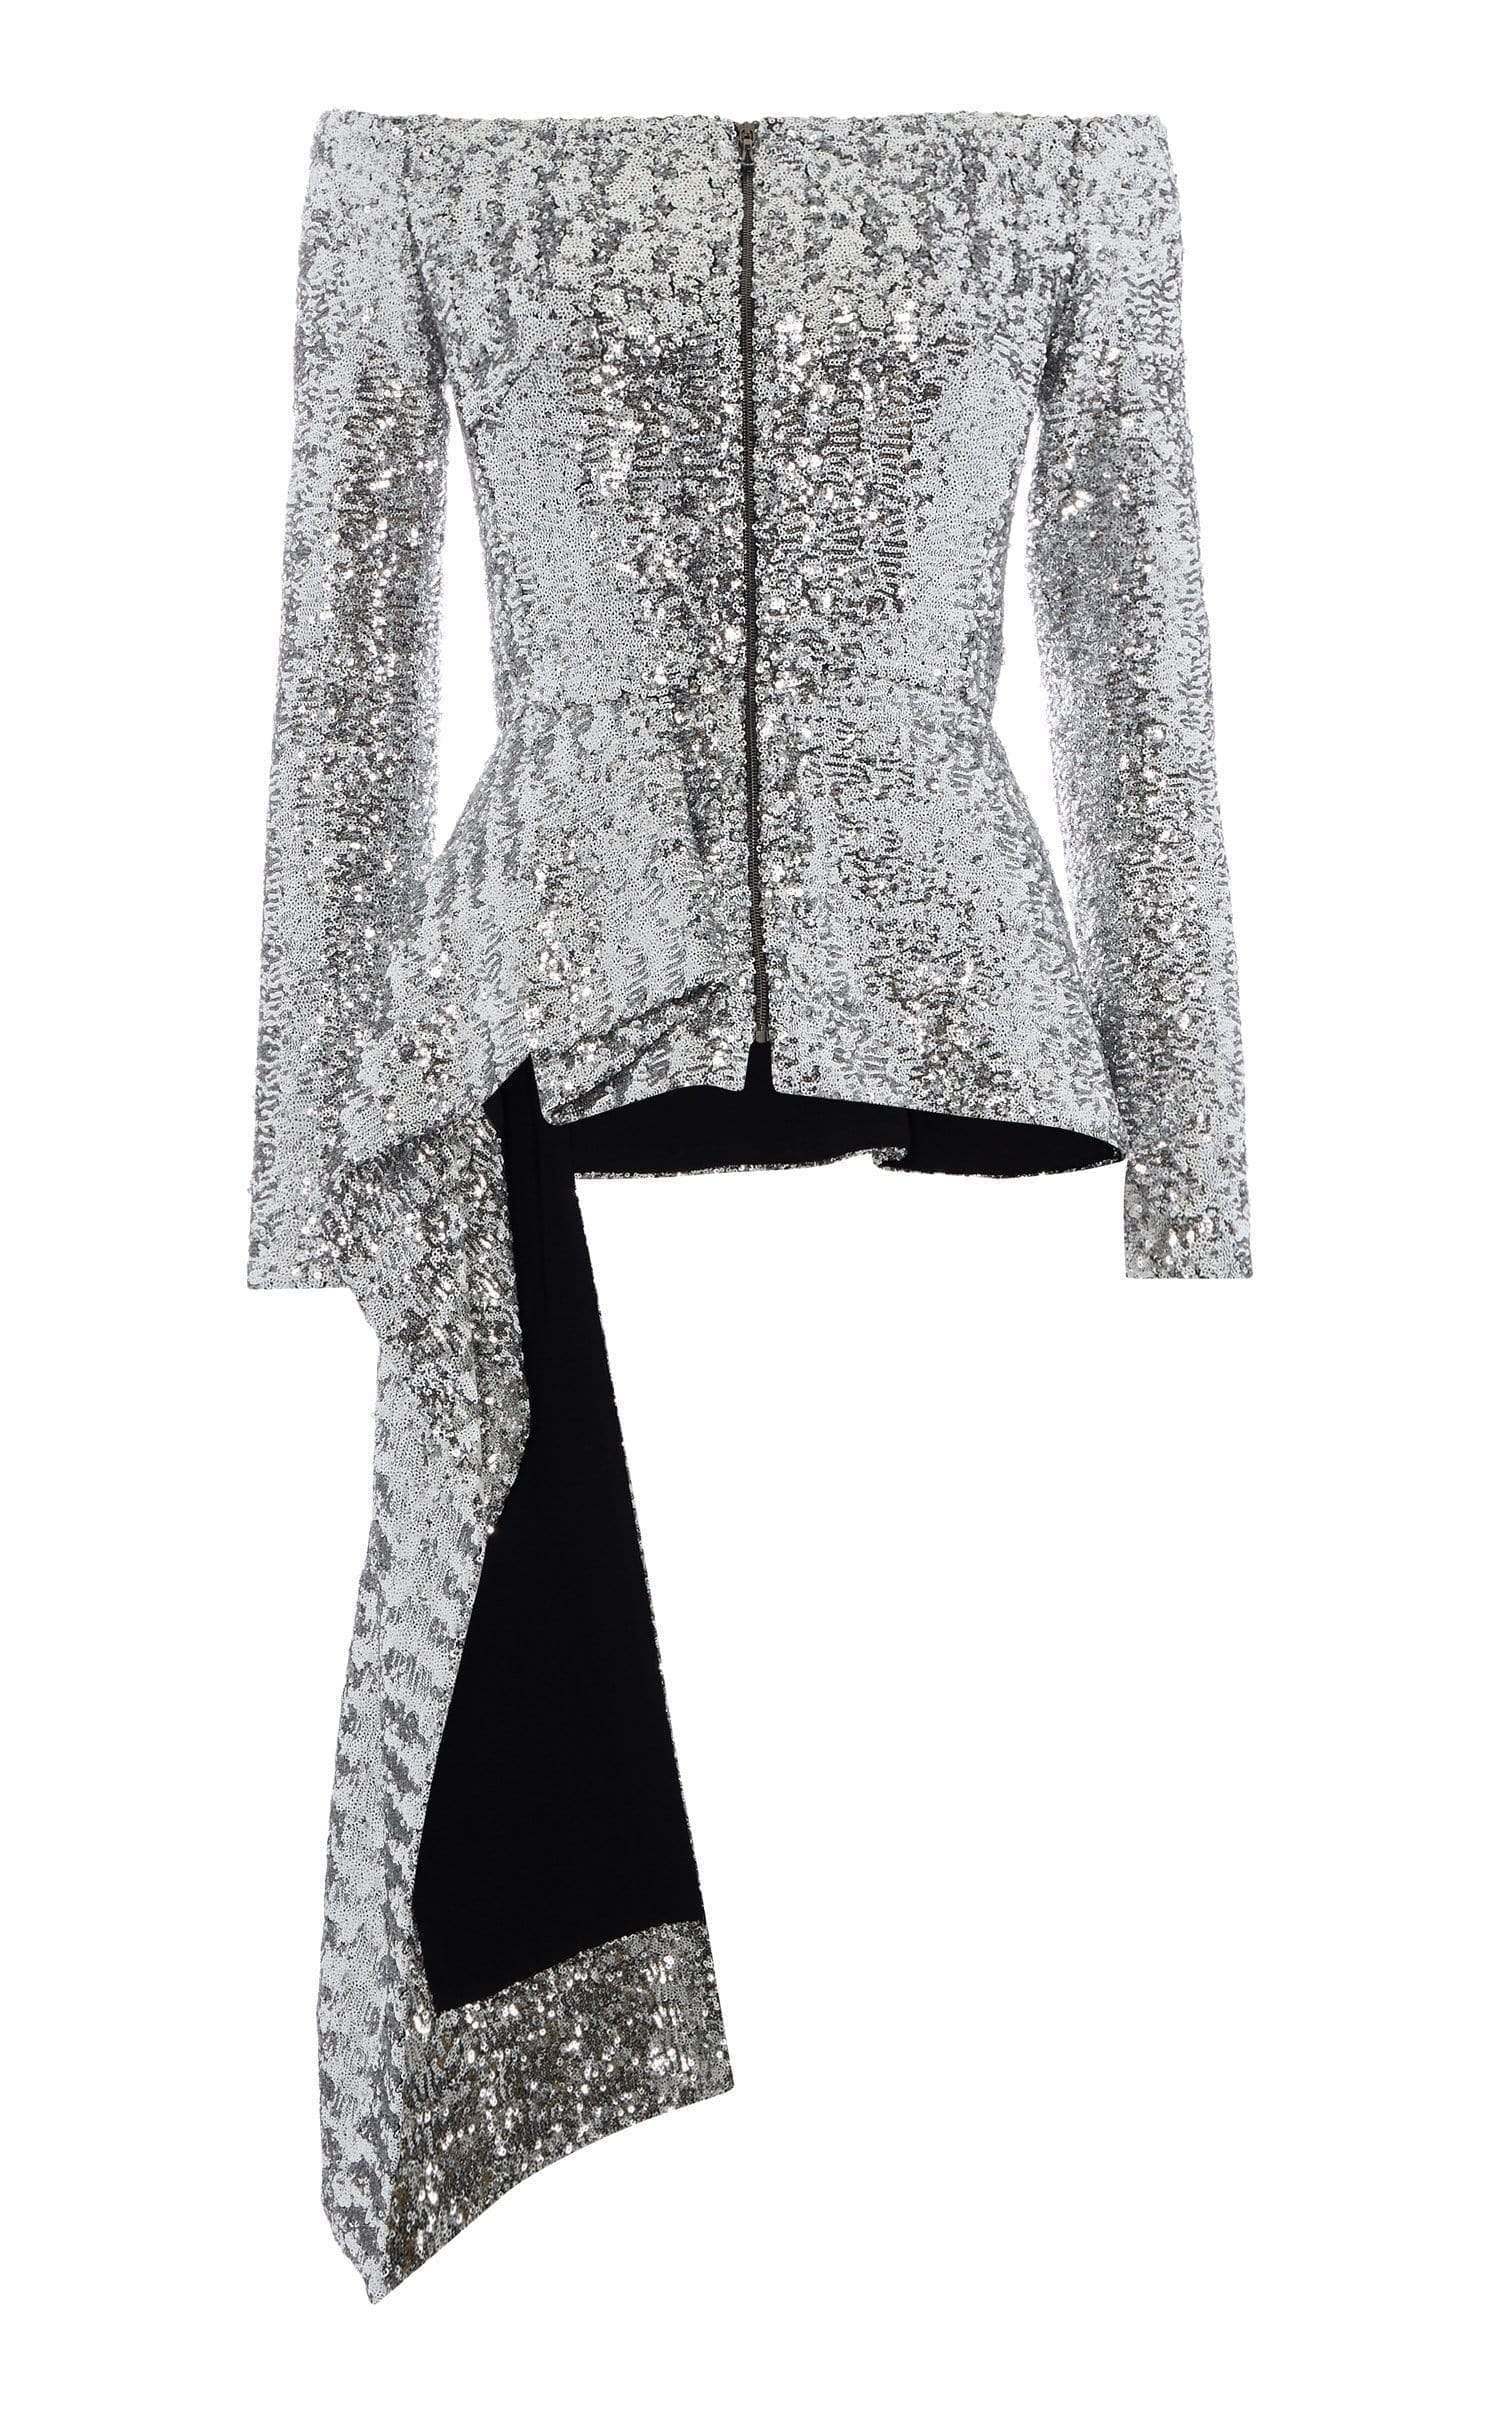 Endfield Jacket In Silver from Roland Mouret